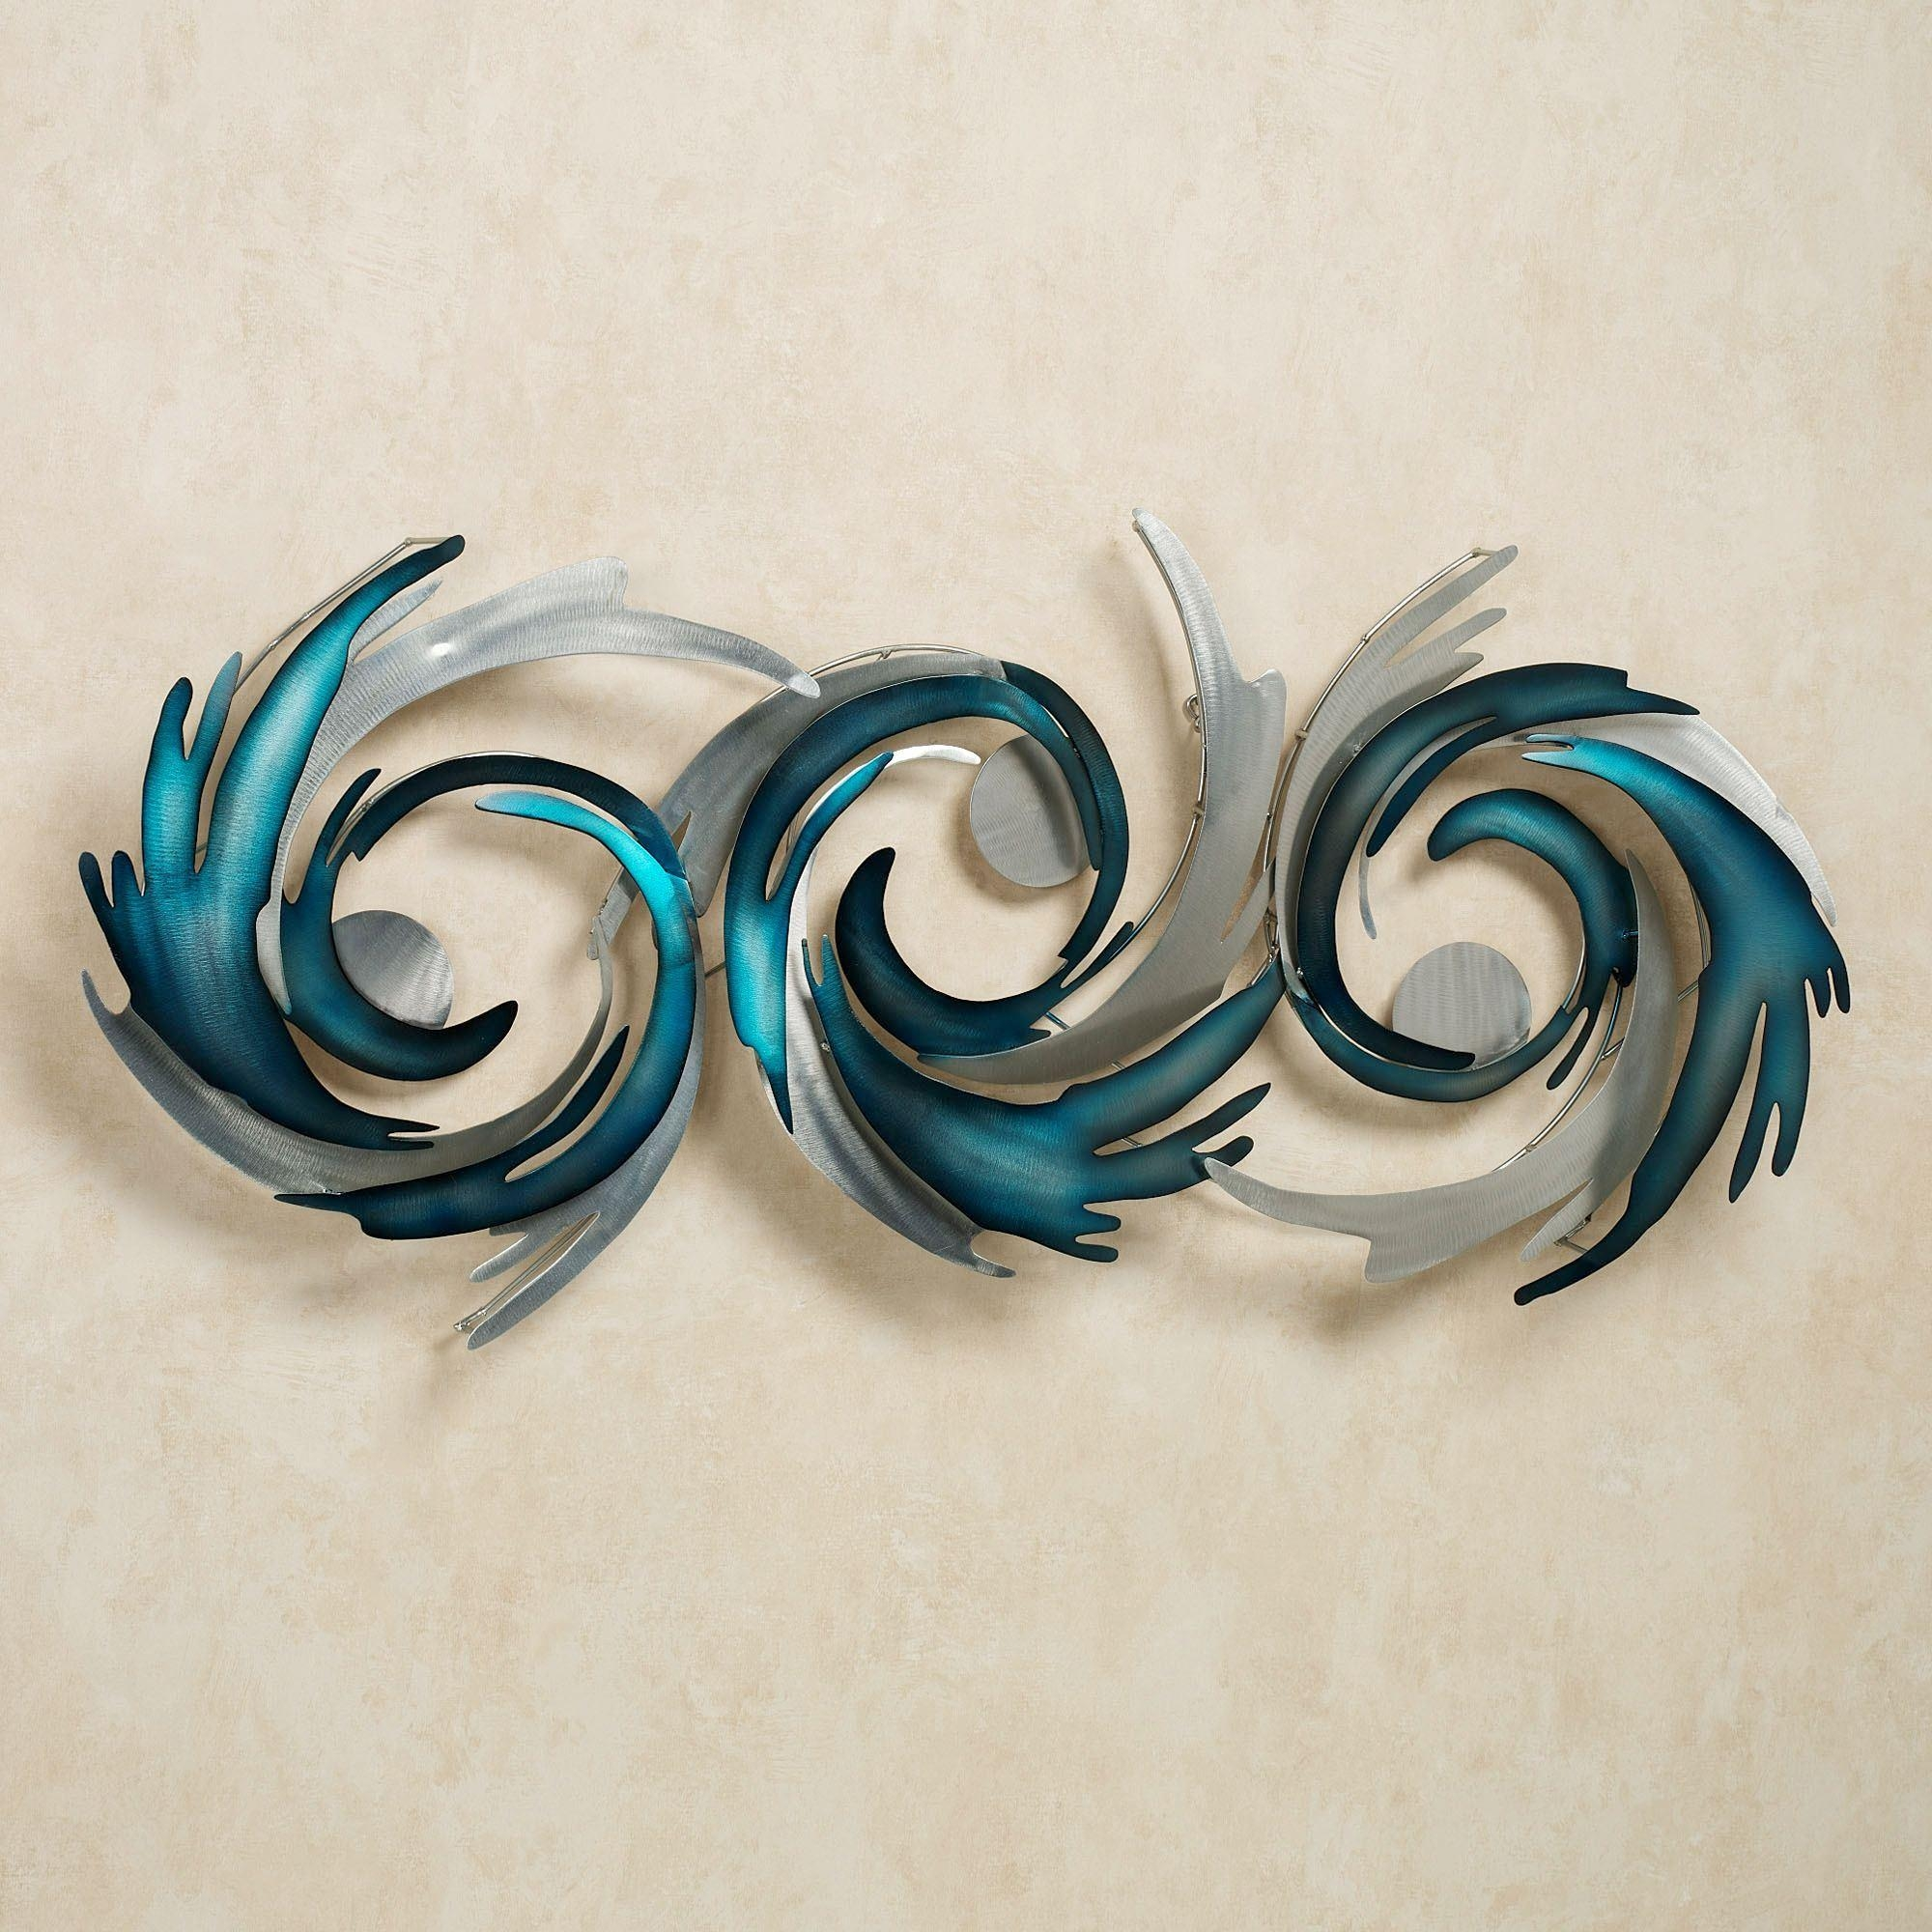 Contemporary Metal Wall Art Sculptures | Touch Of Class In Teal Metal Wall Art (View 20 of 20)